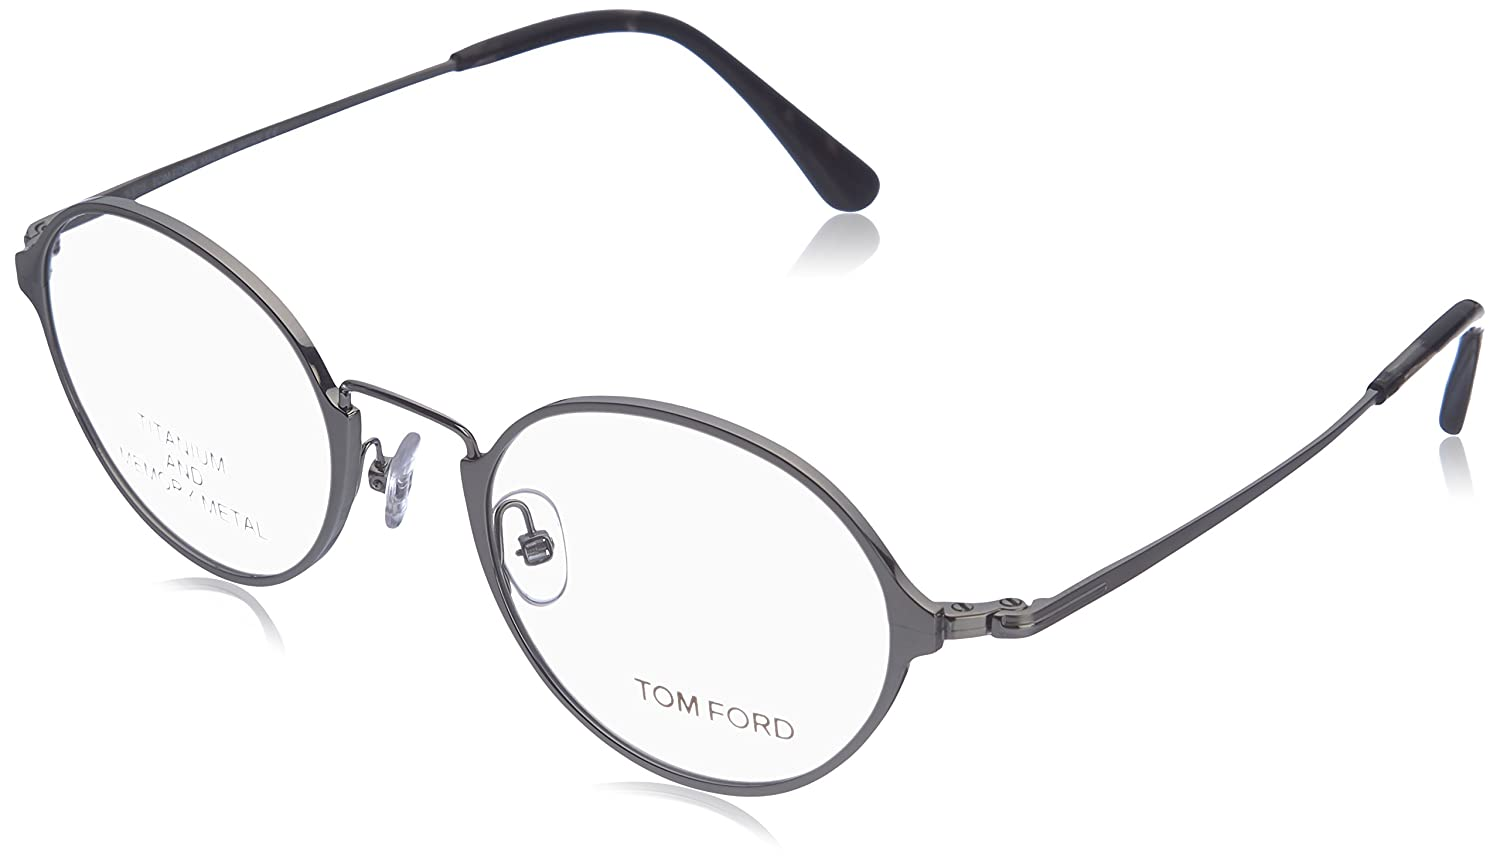 570d16629b Tom Ford Round Eyeglasses TF5350 014 Size  48mm Ruthenium Black FT5350 at  Amazon Men s Clothing store